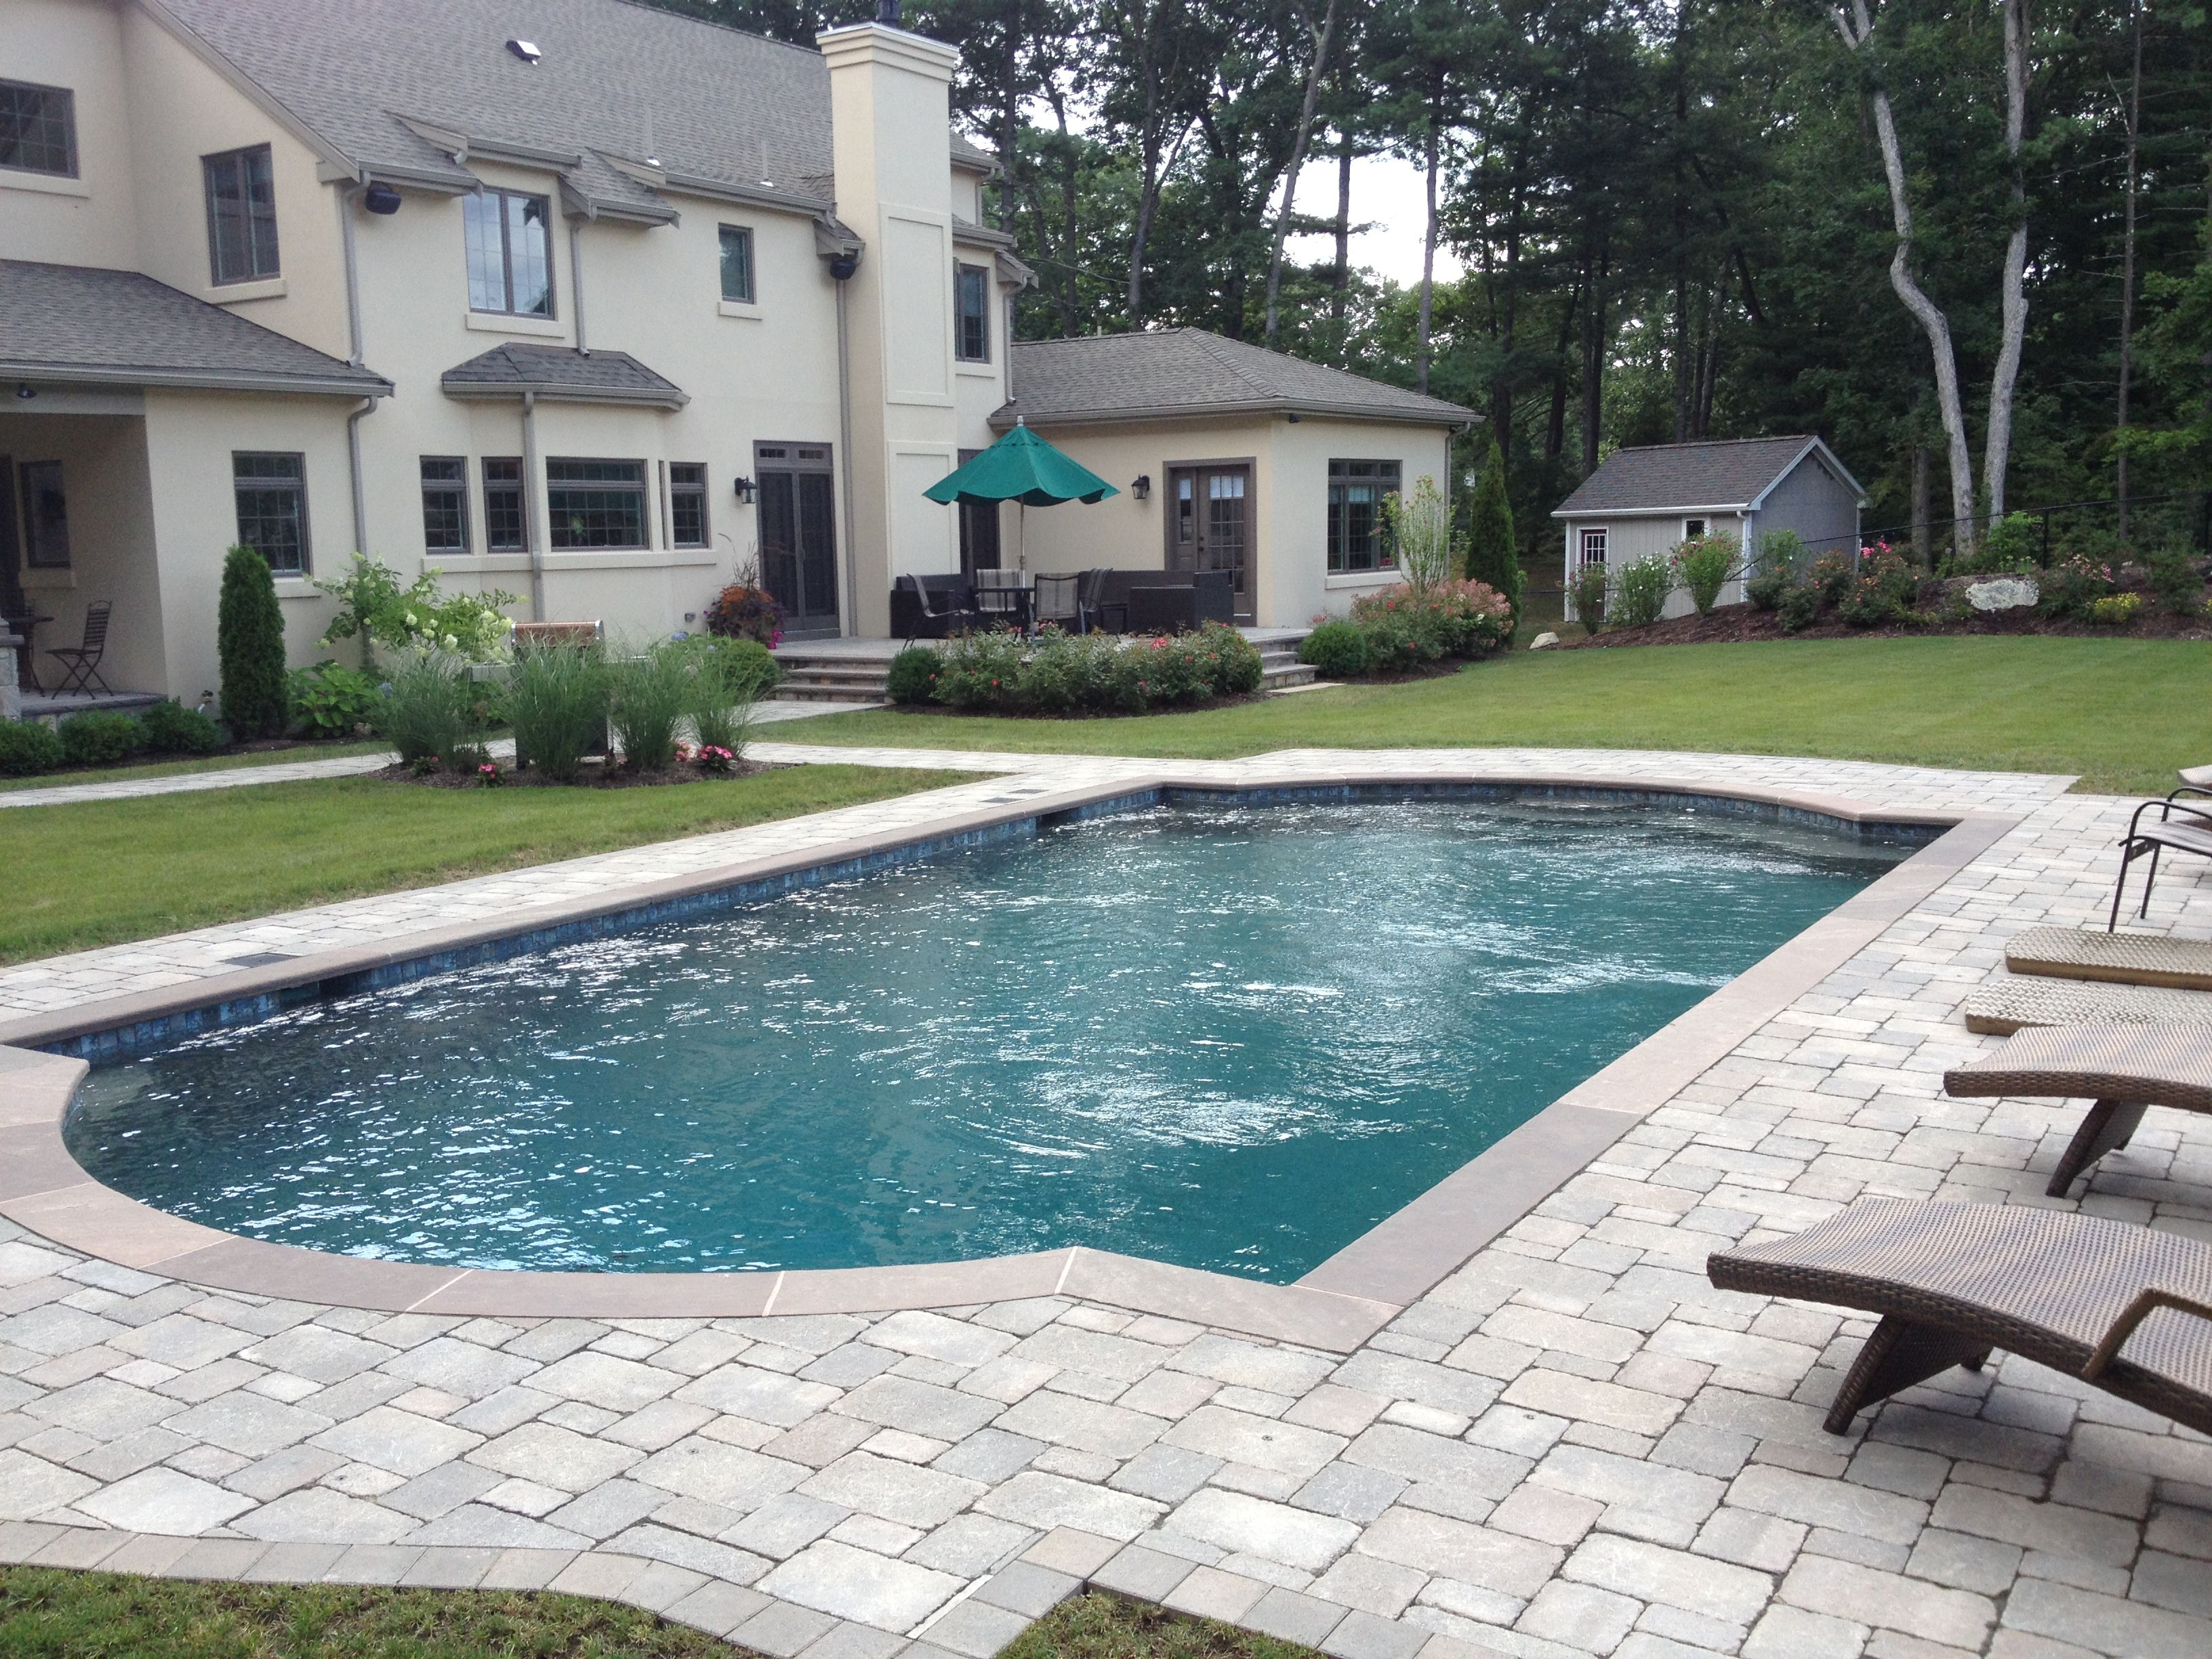 Stone Coping For Vinyl Liner Pools Google Search Backyard Ideas Pinterest Google Search